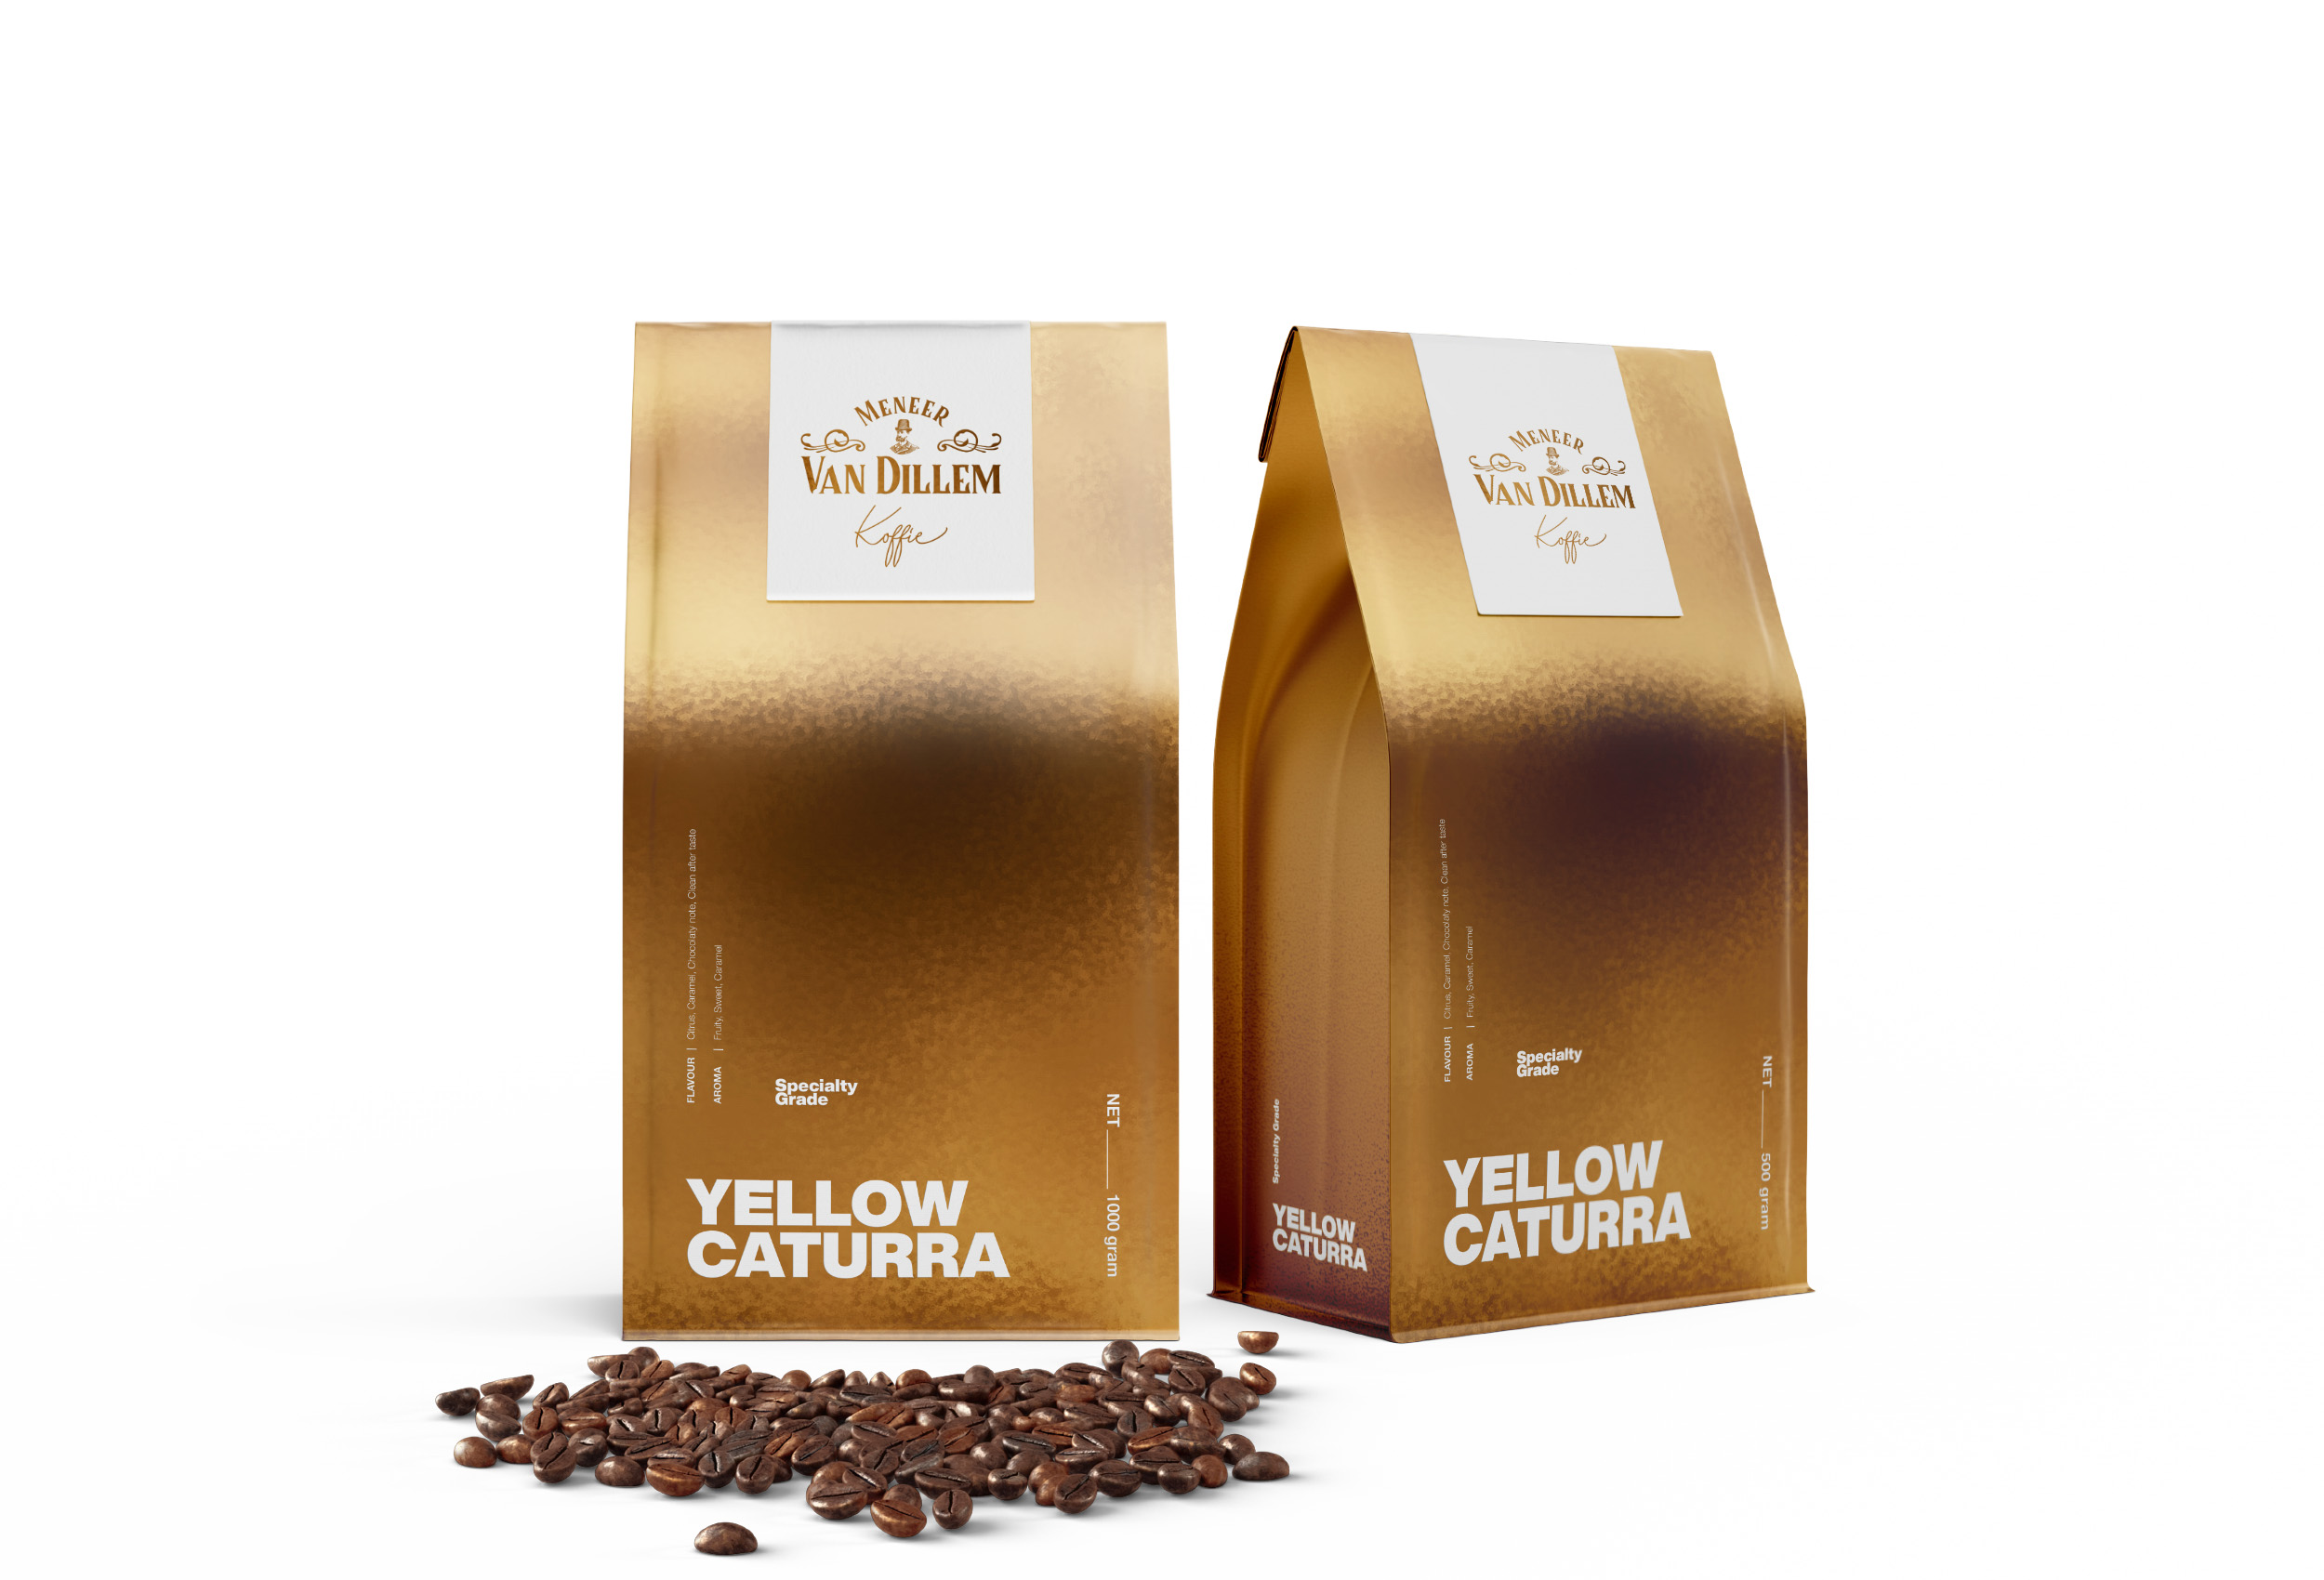 Widarto Impact do rebranding design for Meneer Van Dillem Koffie packaging